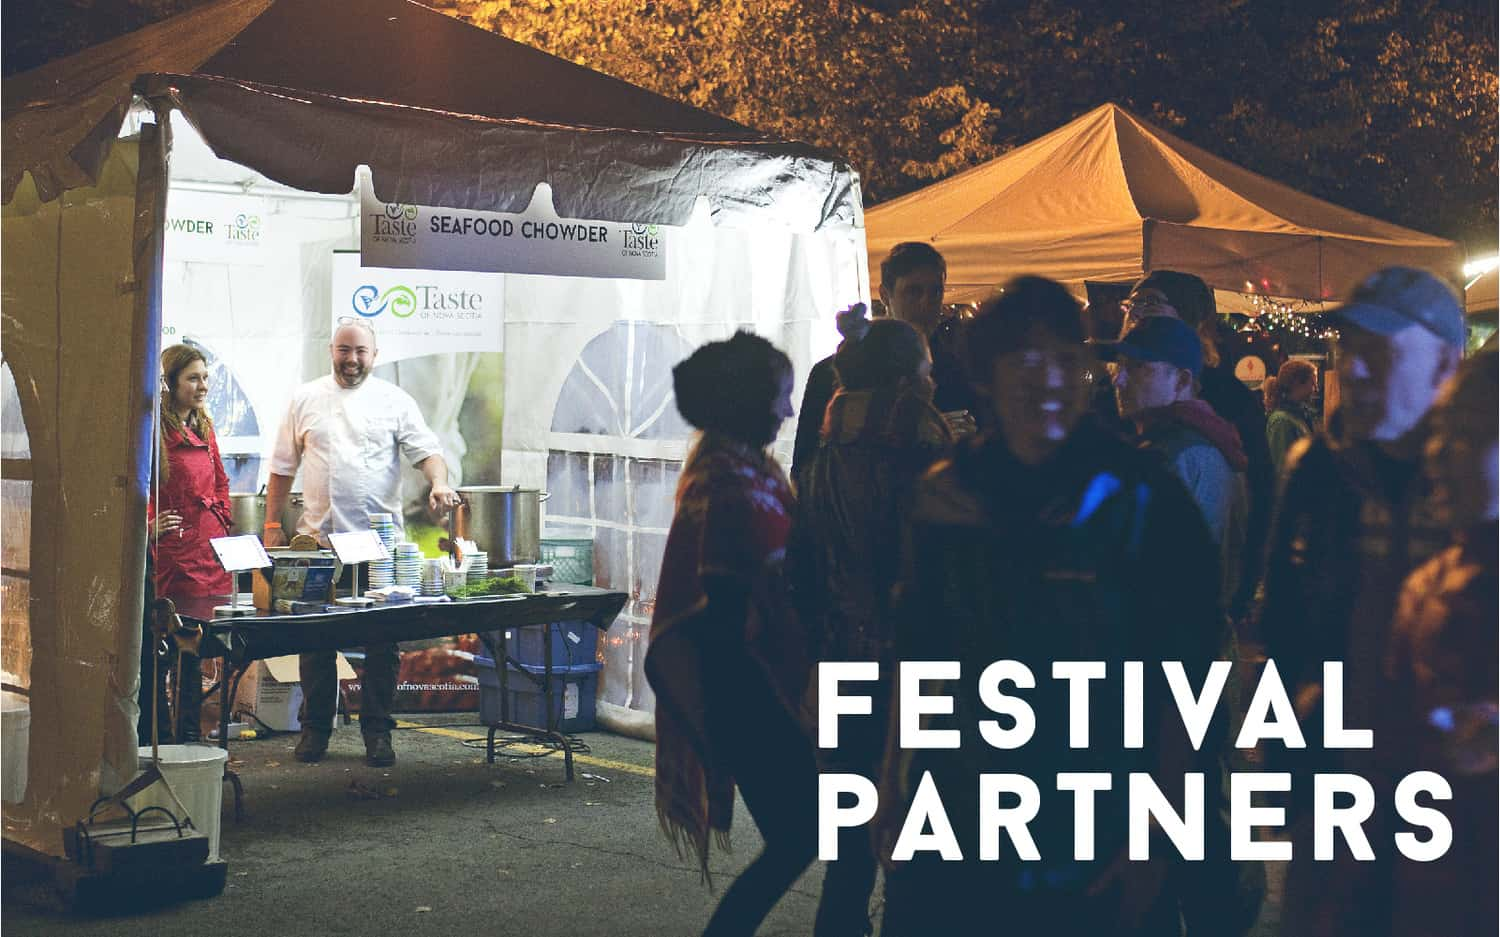 Partner with Halifax Oyster Festival 2016